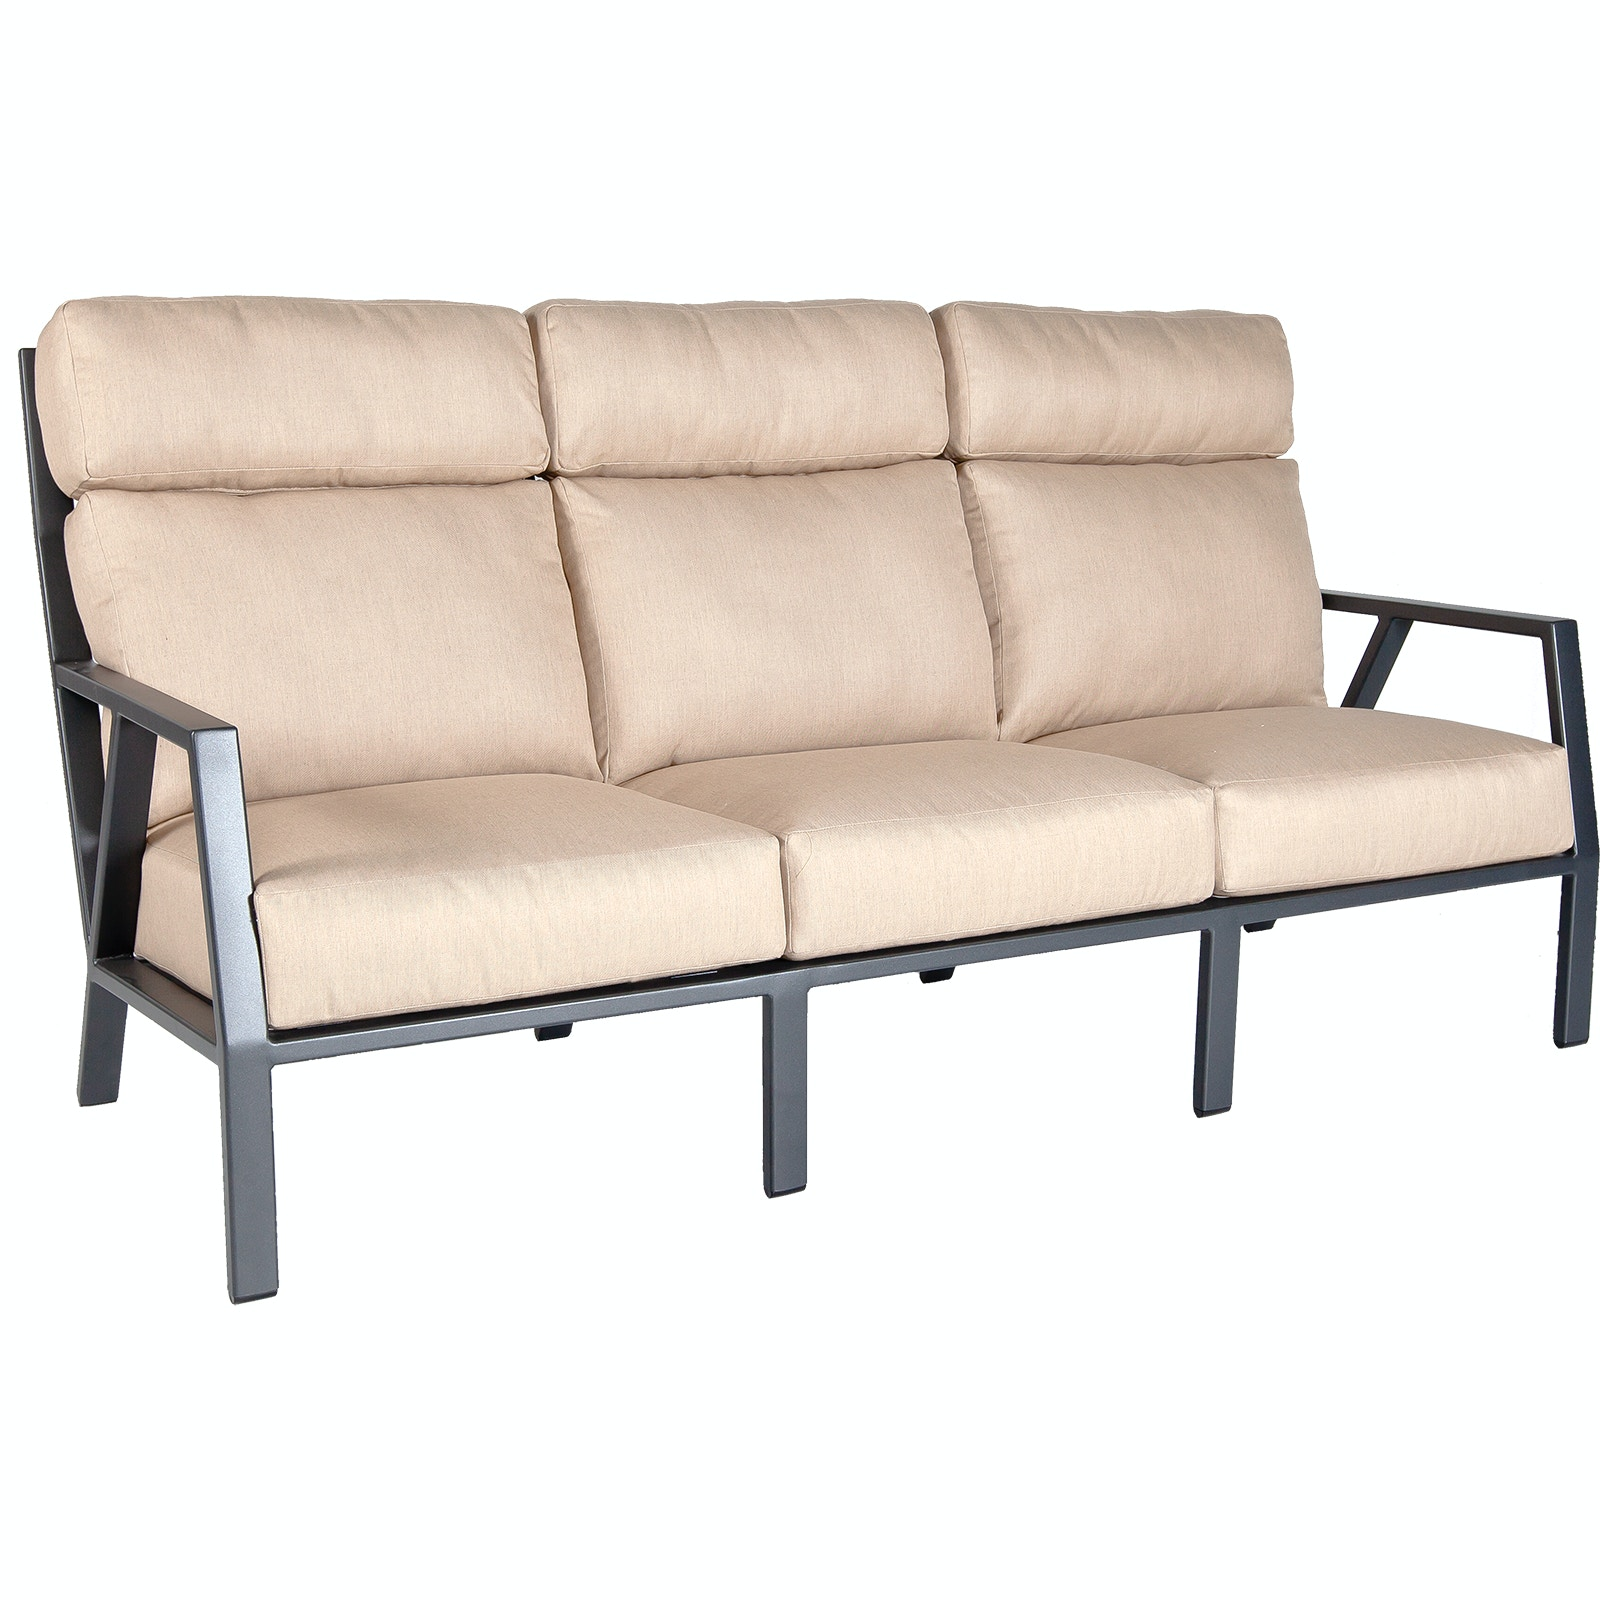 Delicieux OW Lee Furniture 27175 3S Aris Sofa